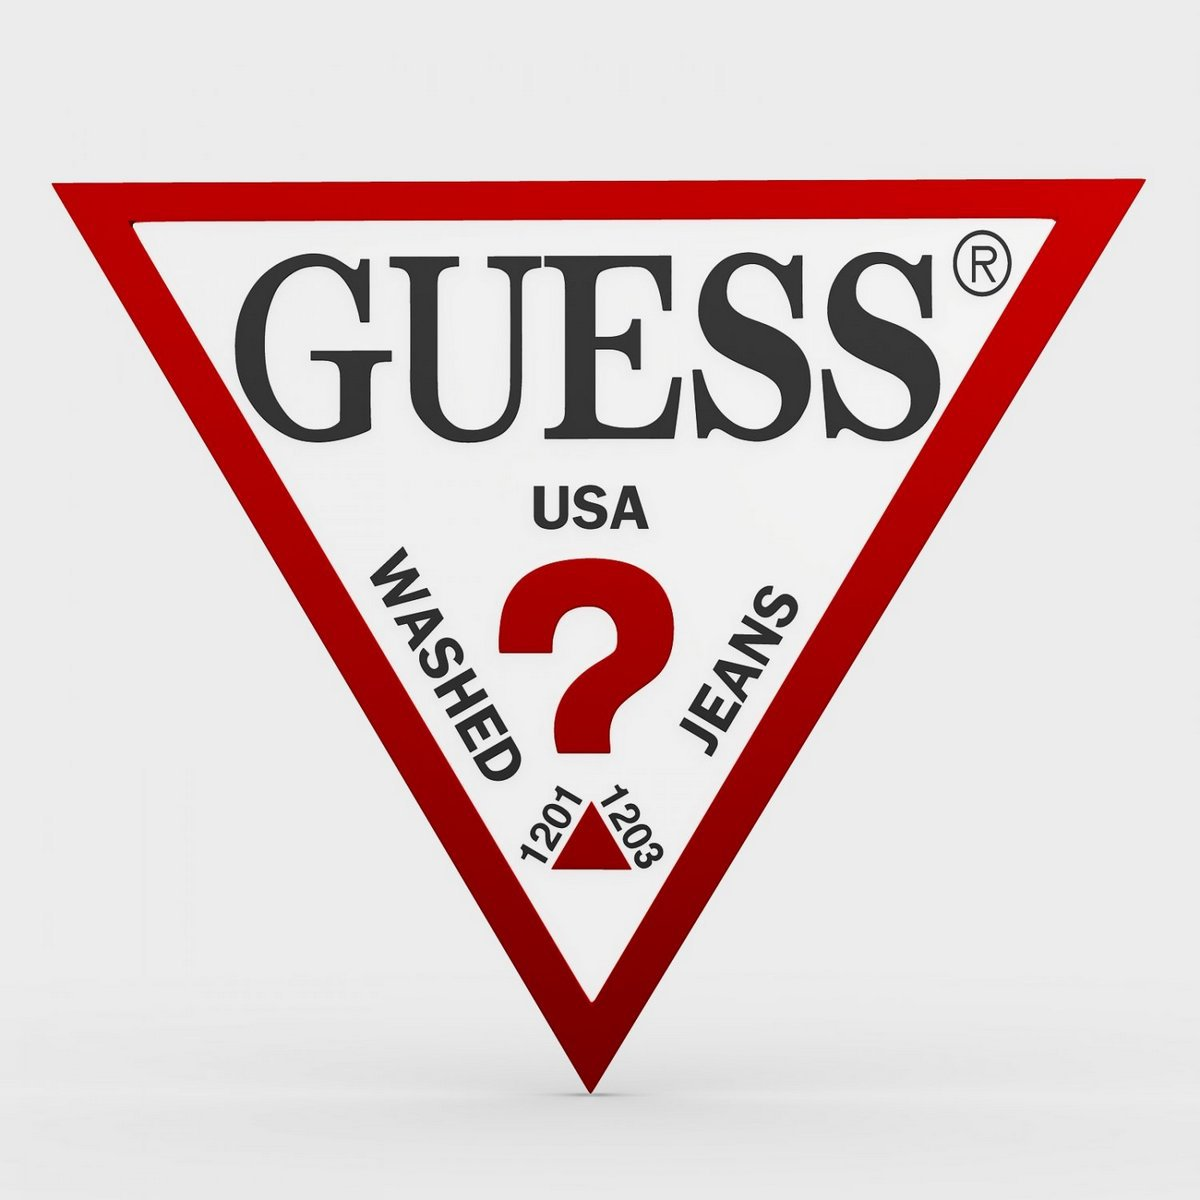 Marketing Mix Of Guess